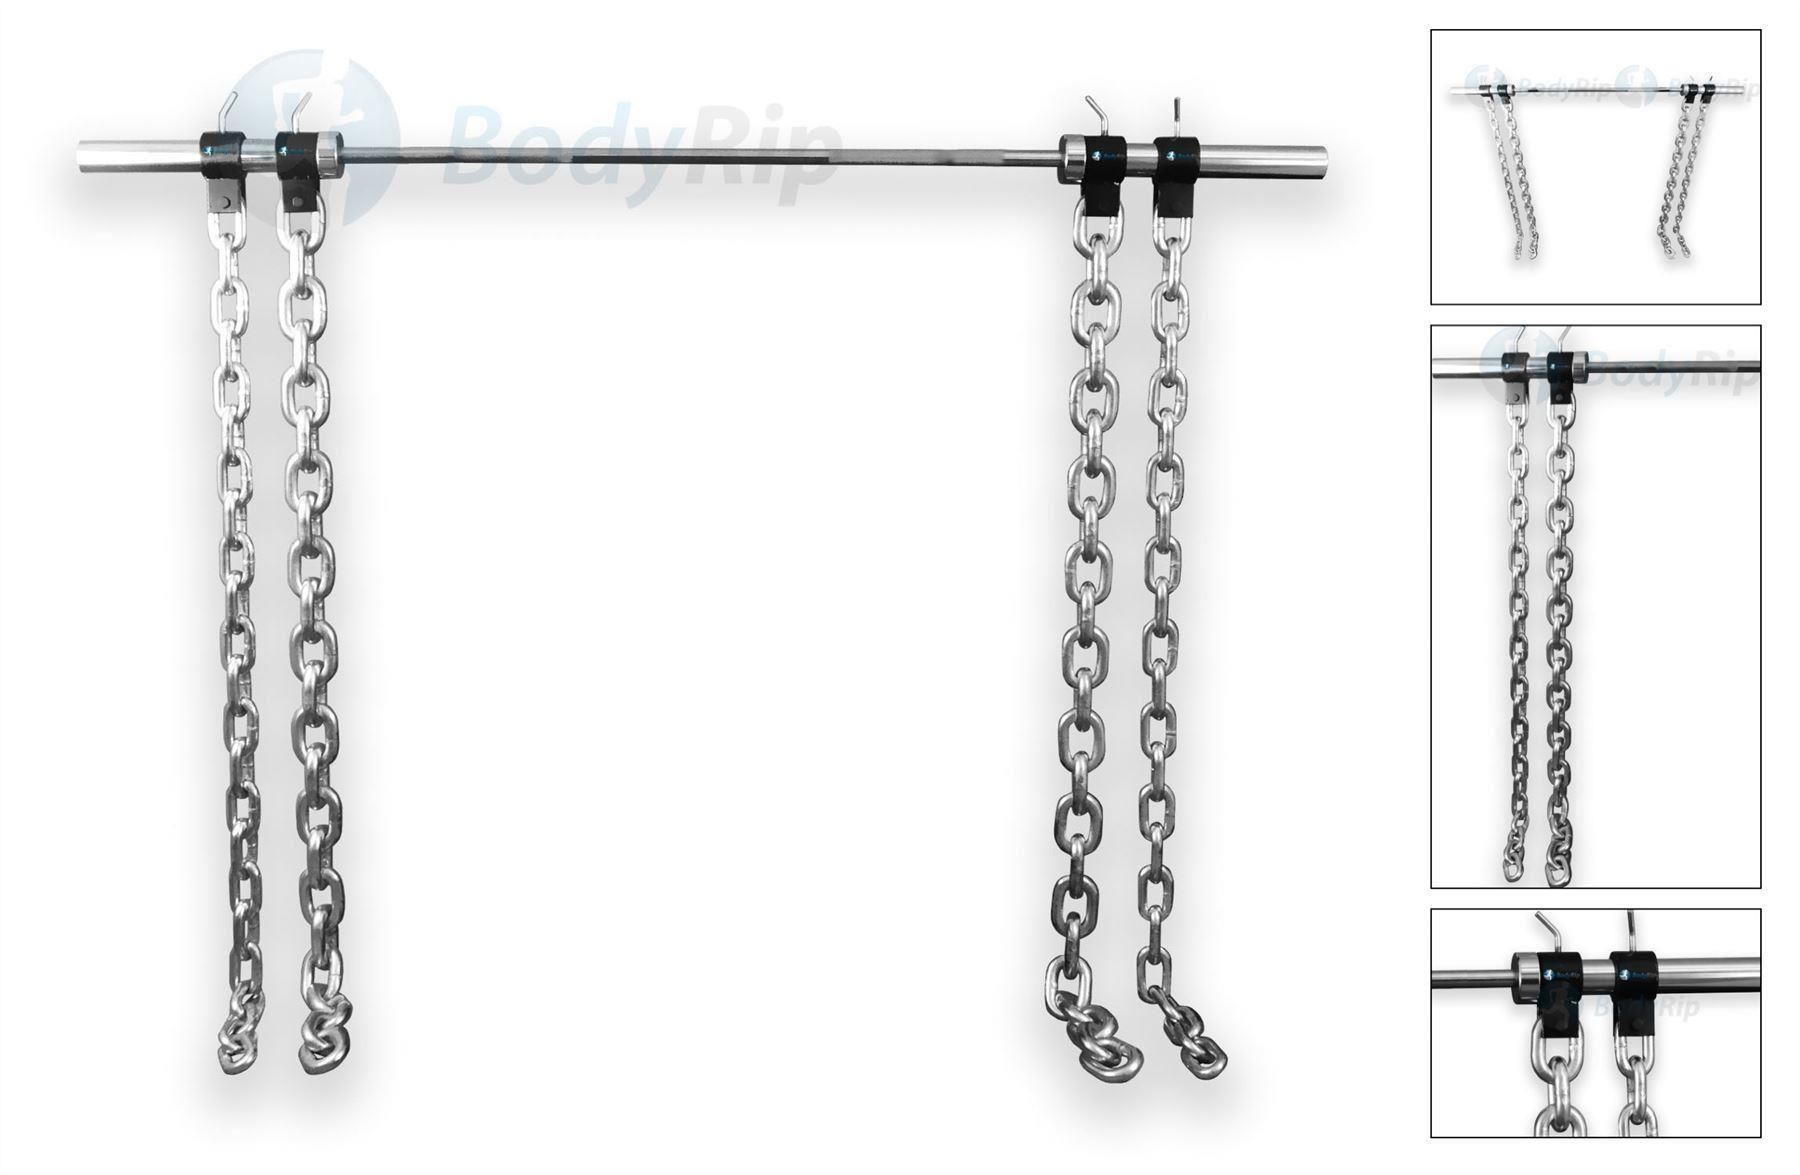 bdd87e463a0 These Weightlifting Chains With Collars Are Ideal For Adding More Weight On  To Your Olympic Bars To Increase Resistance Gradually Or For Upping The  Weight ...